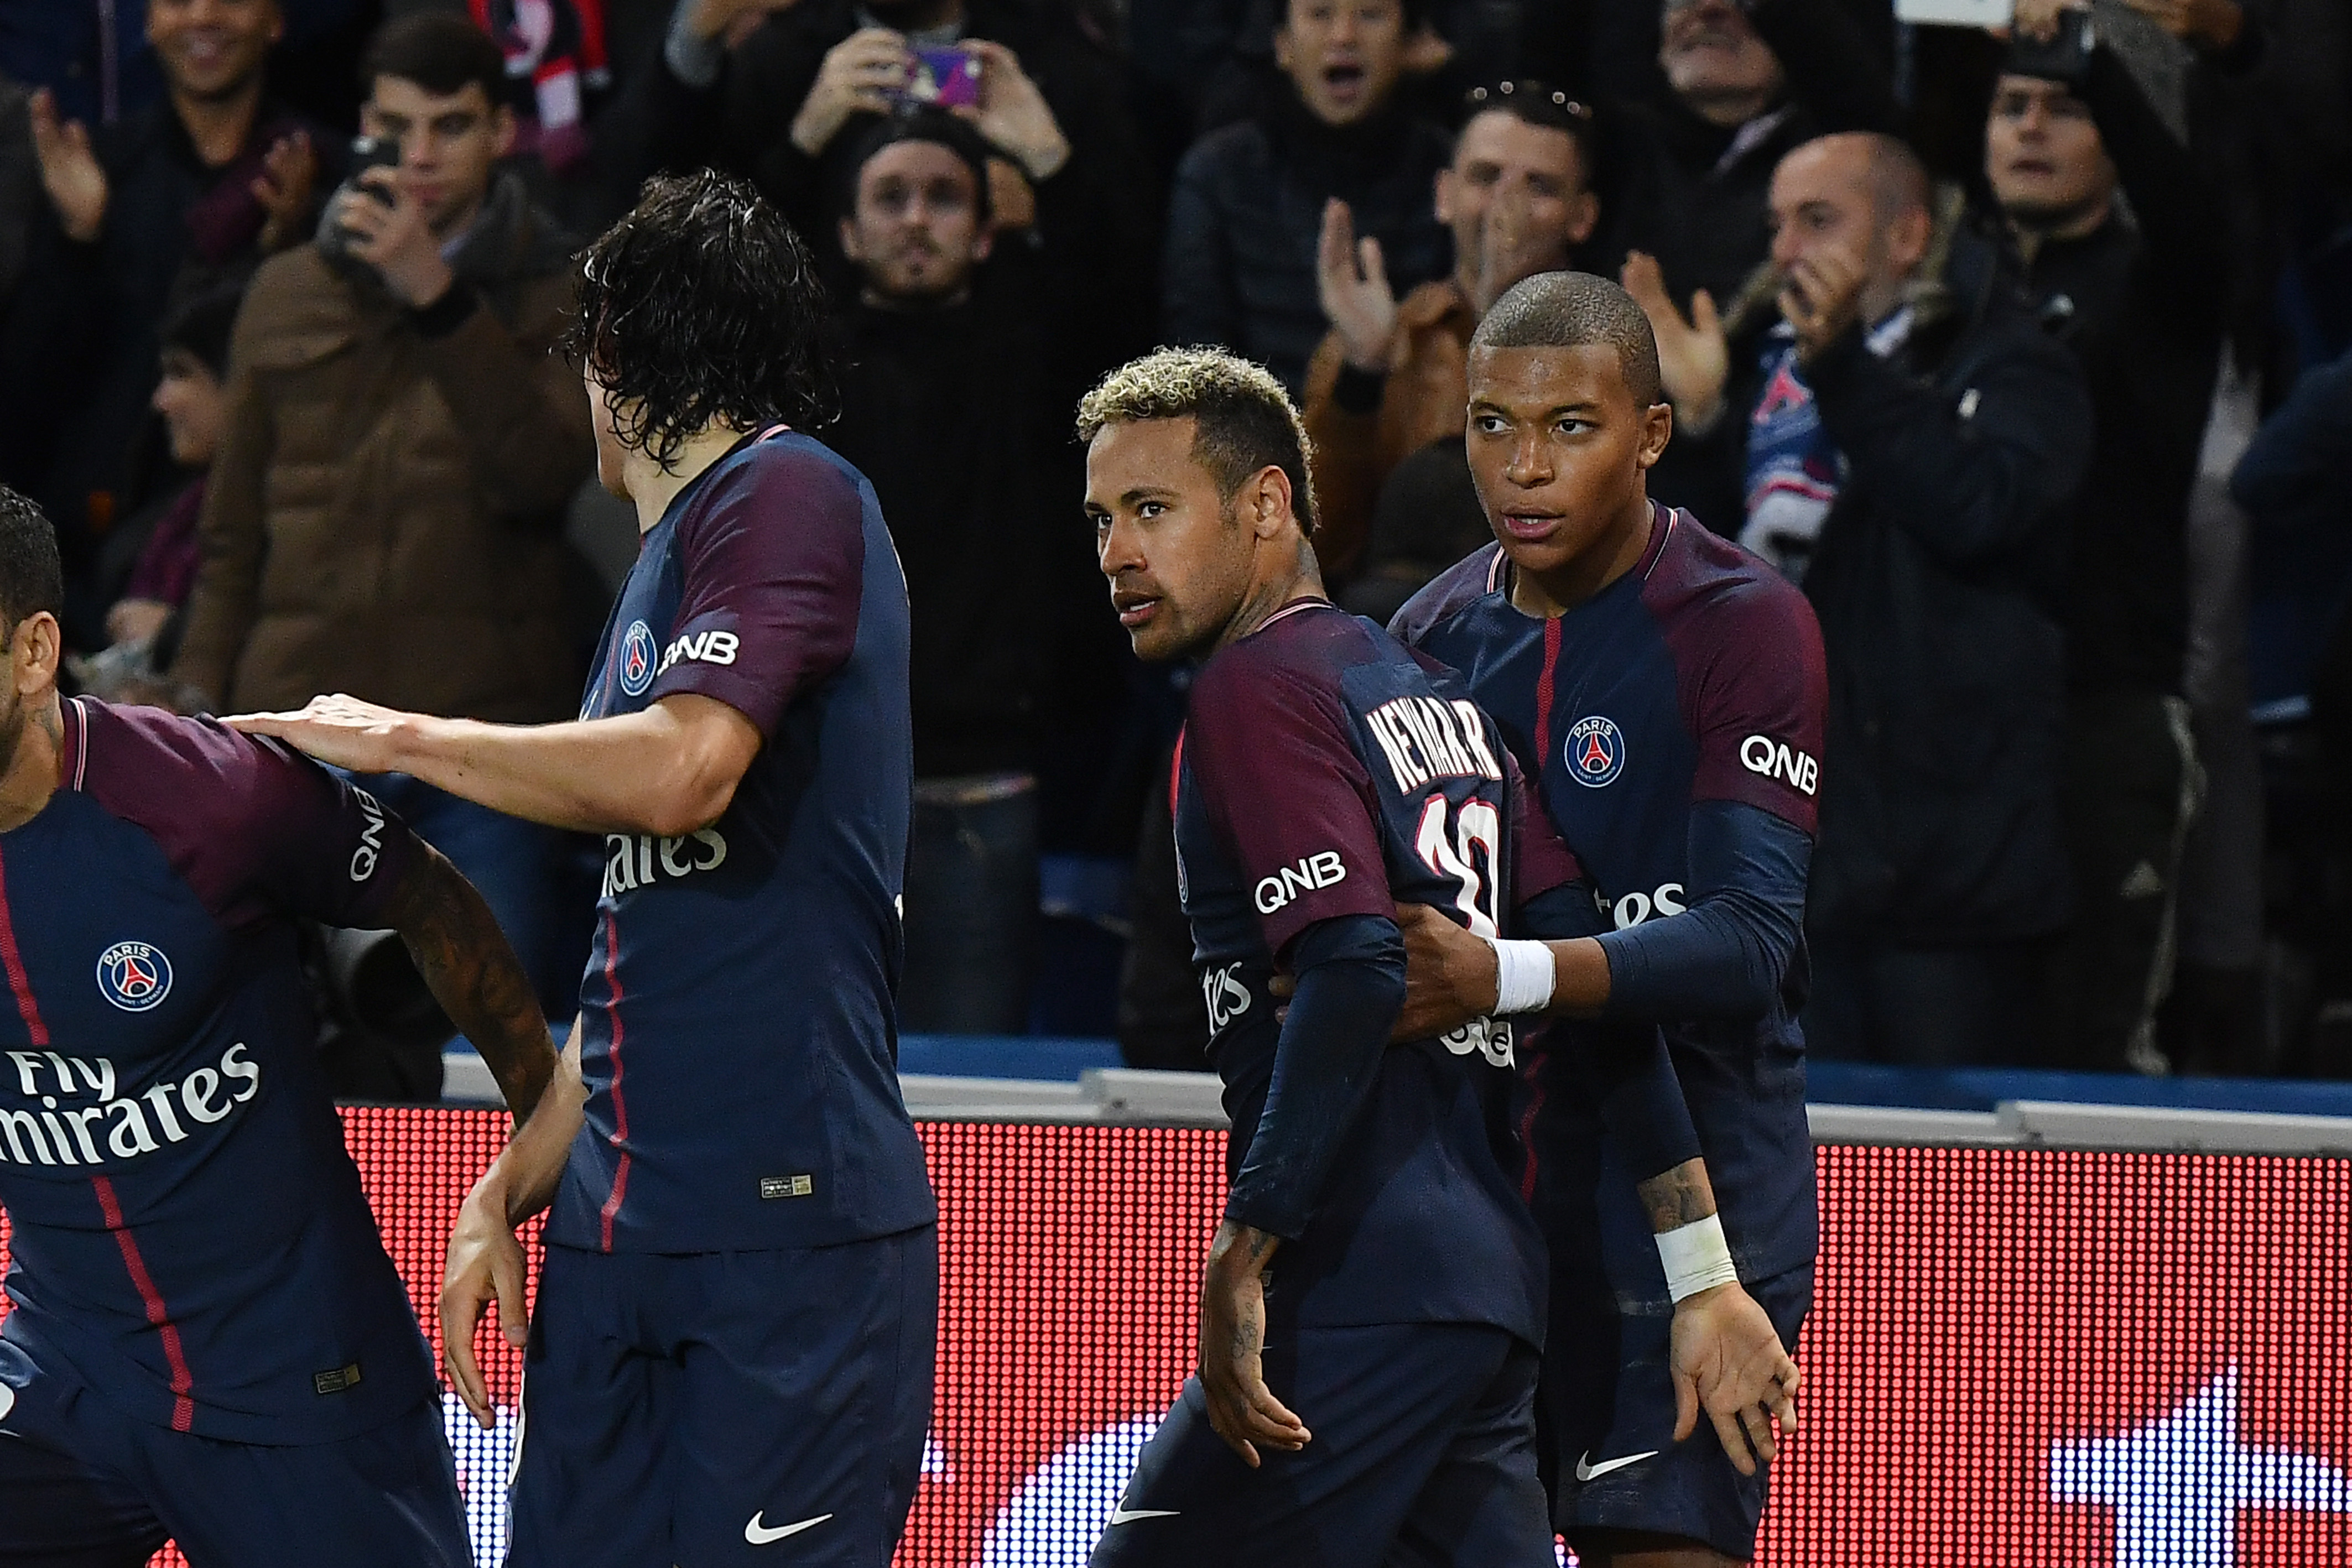 'Do you think you're Lionel Messi?' Edinson Cavani's 'dig' at Neymar